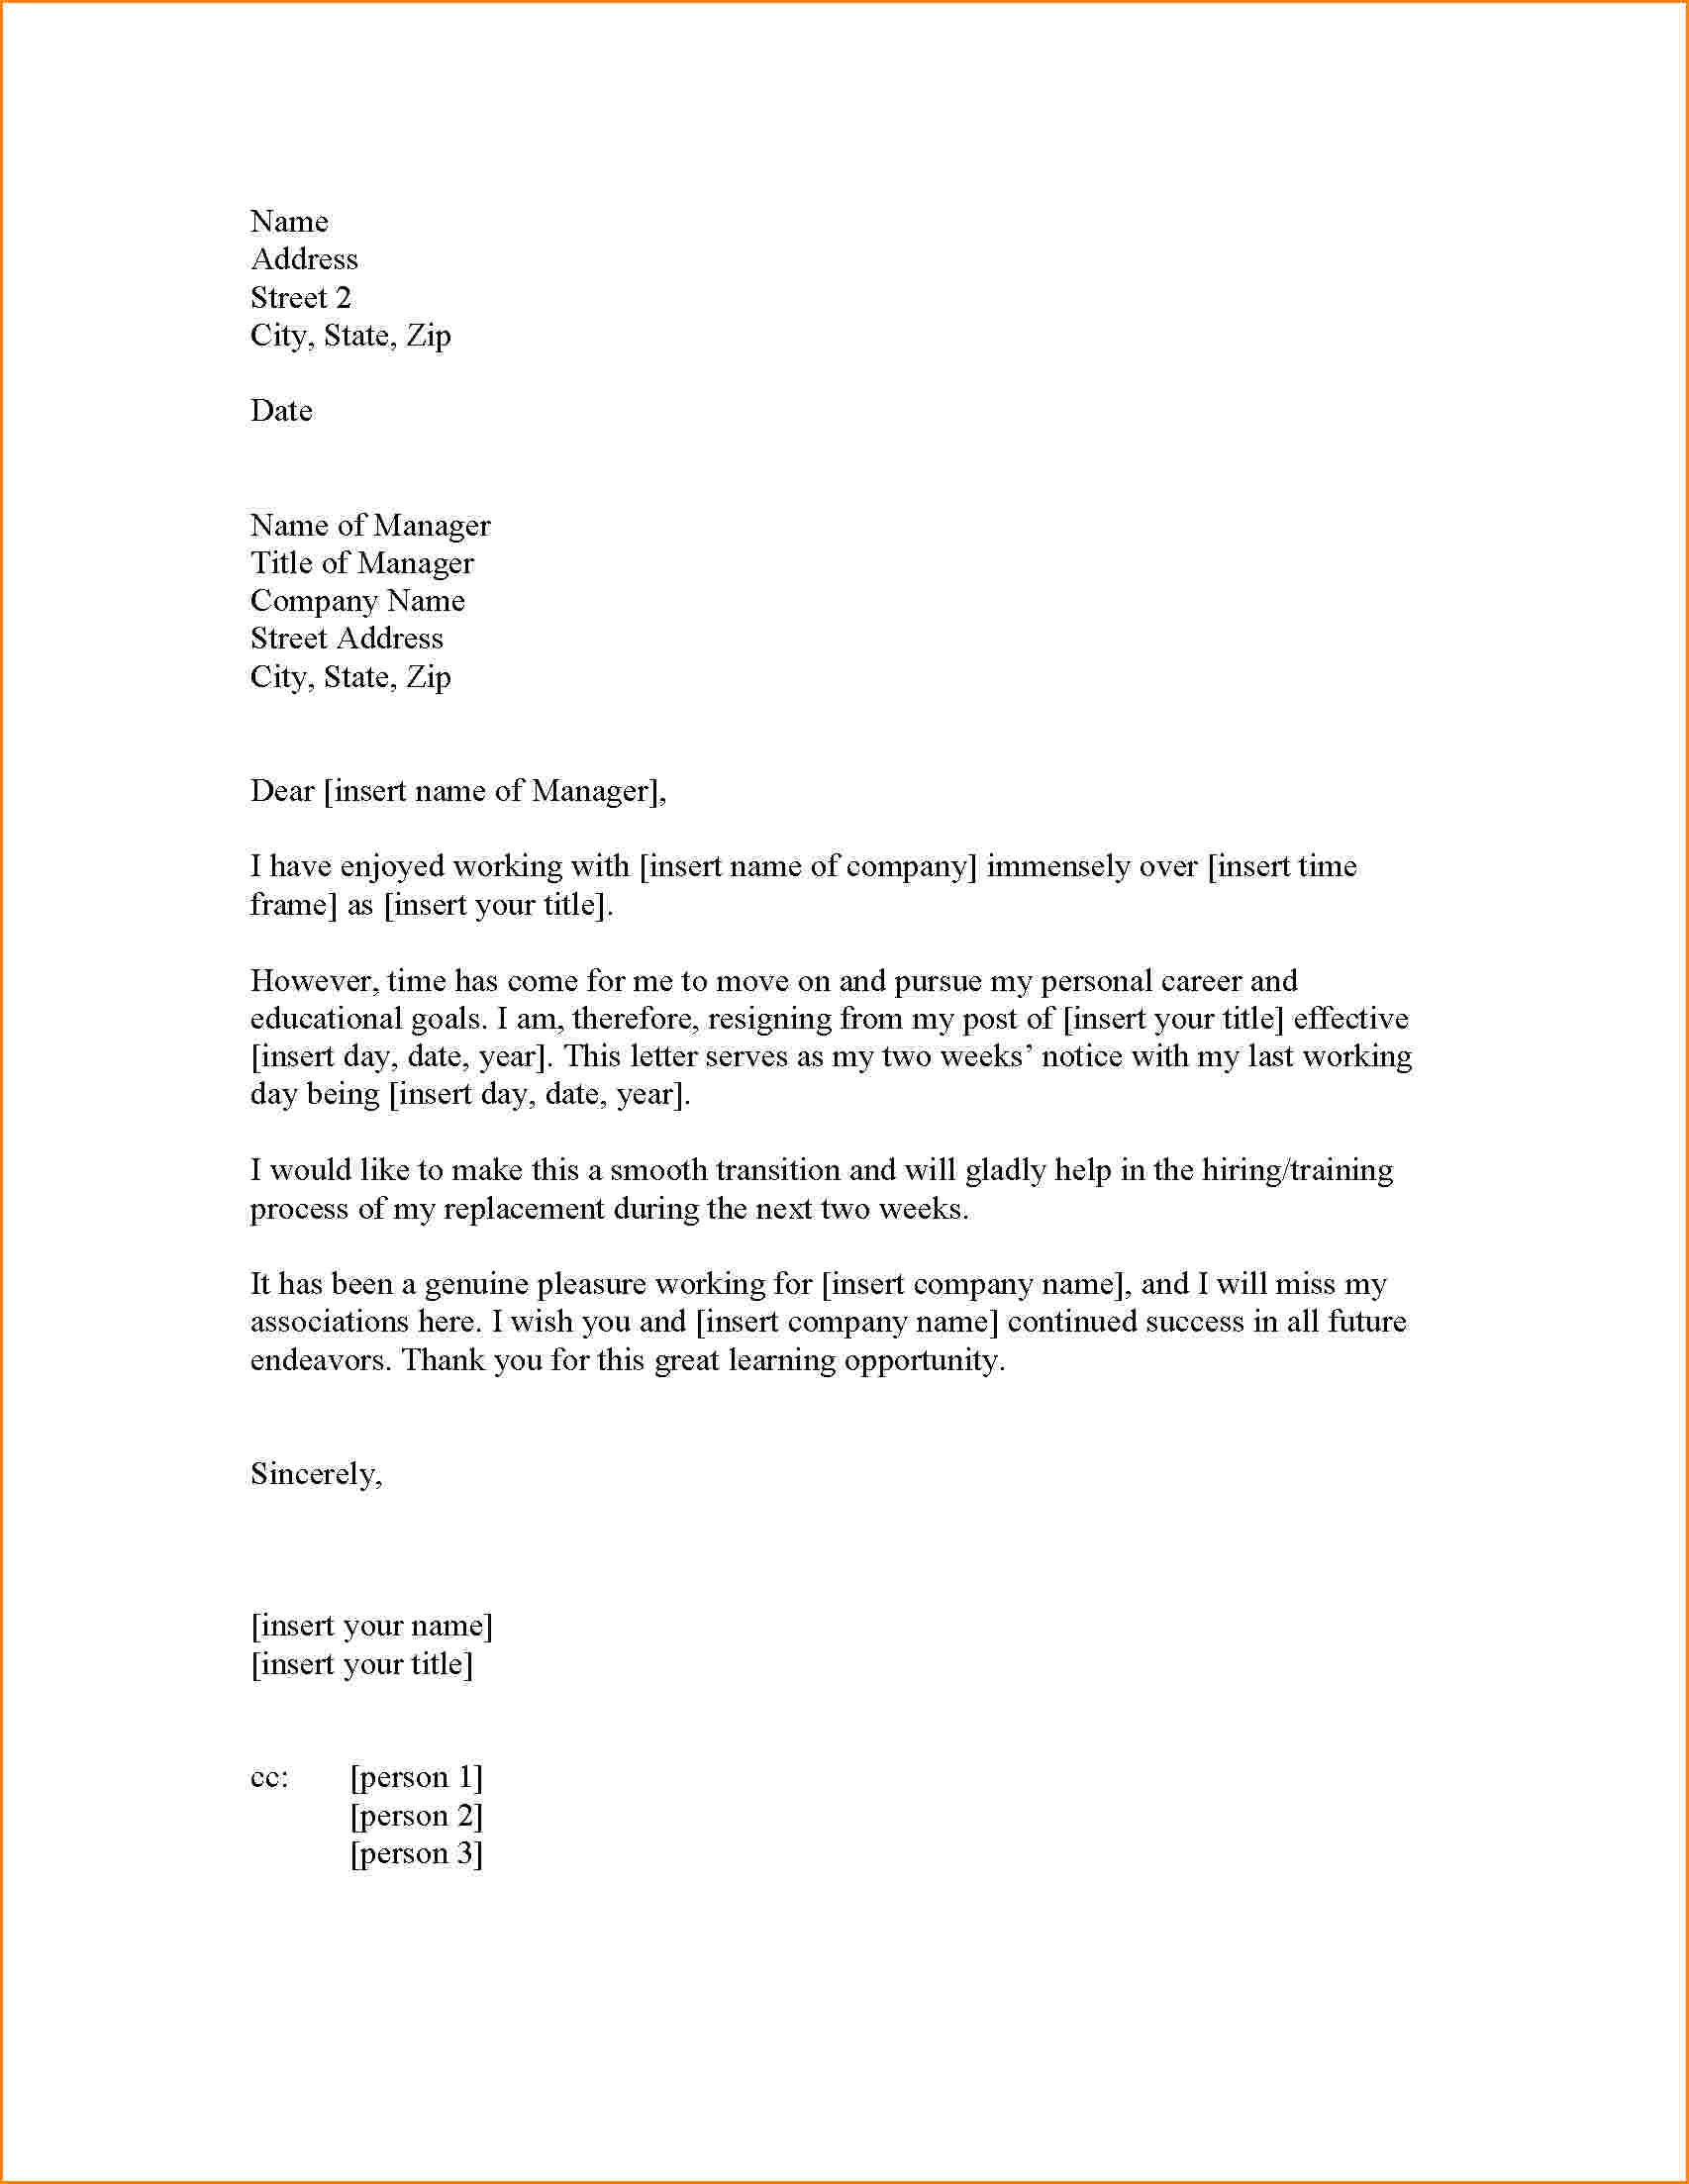 The 25 best professional resignation letter ideas on pinterest the 25 best professional resignation letter ideas on pinterest resignation letter resignation letter format and job resignation letter madrichimfo Gallery